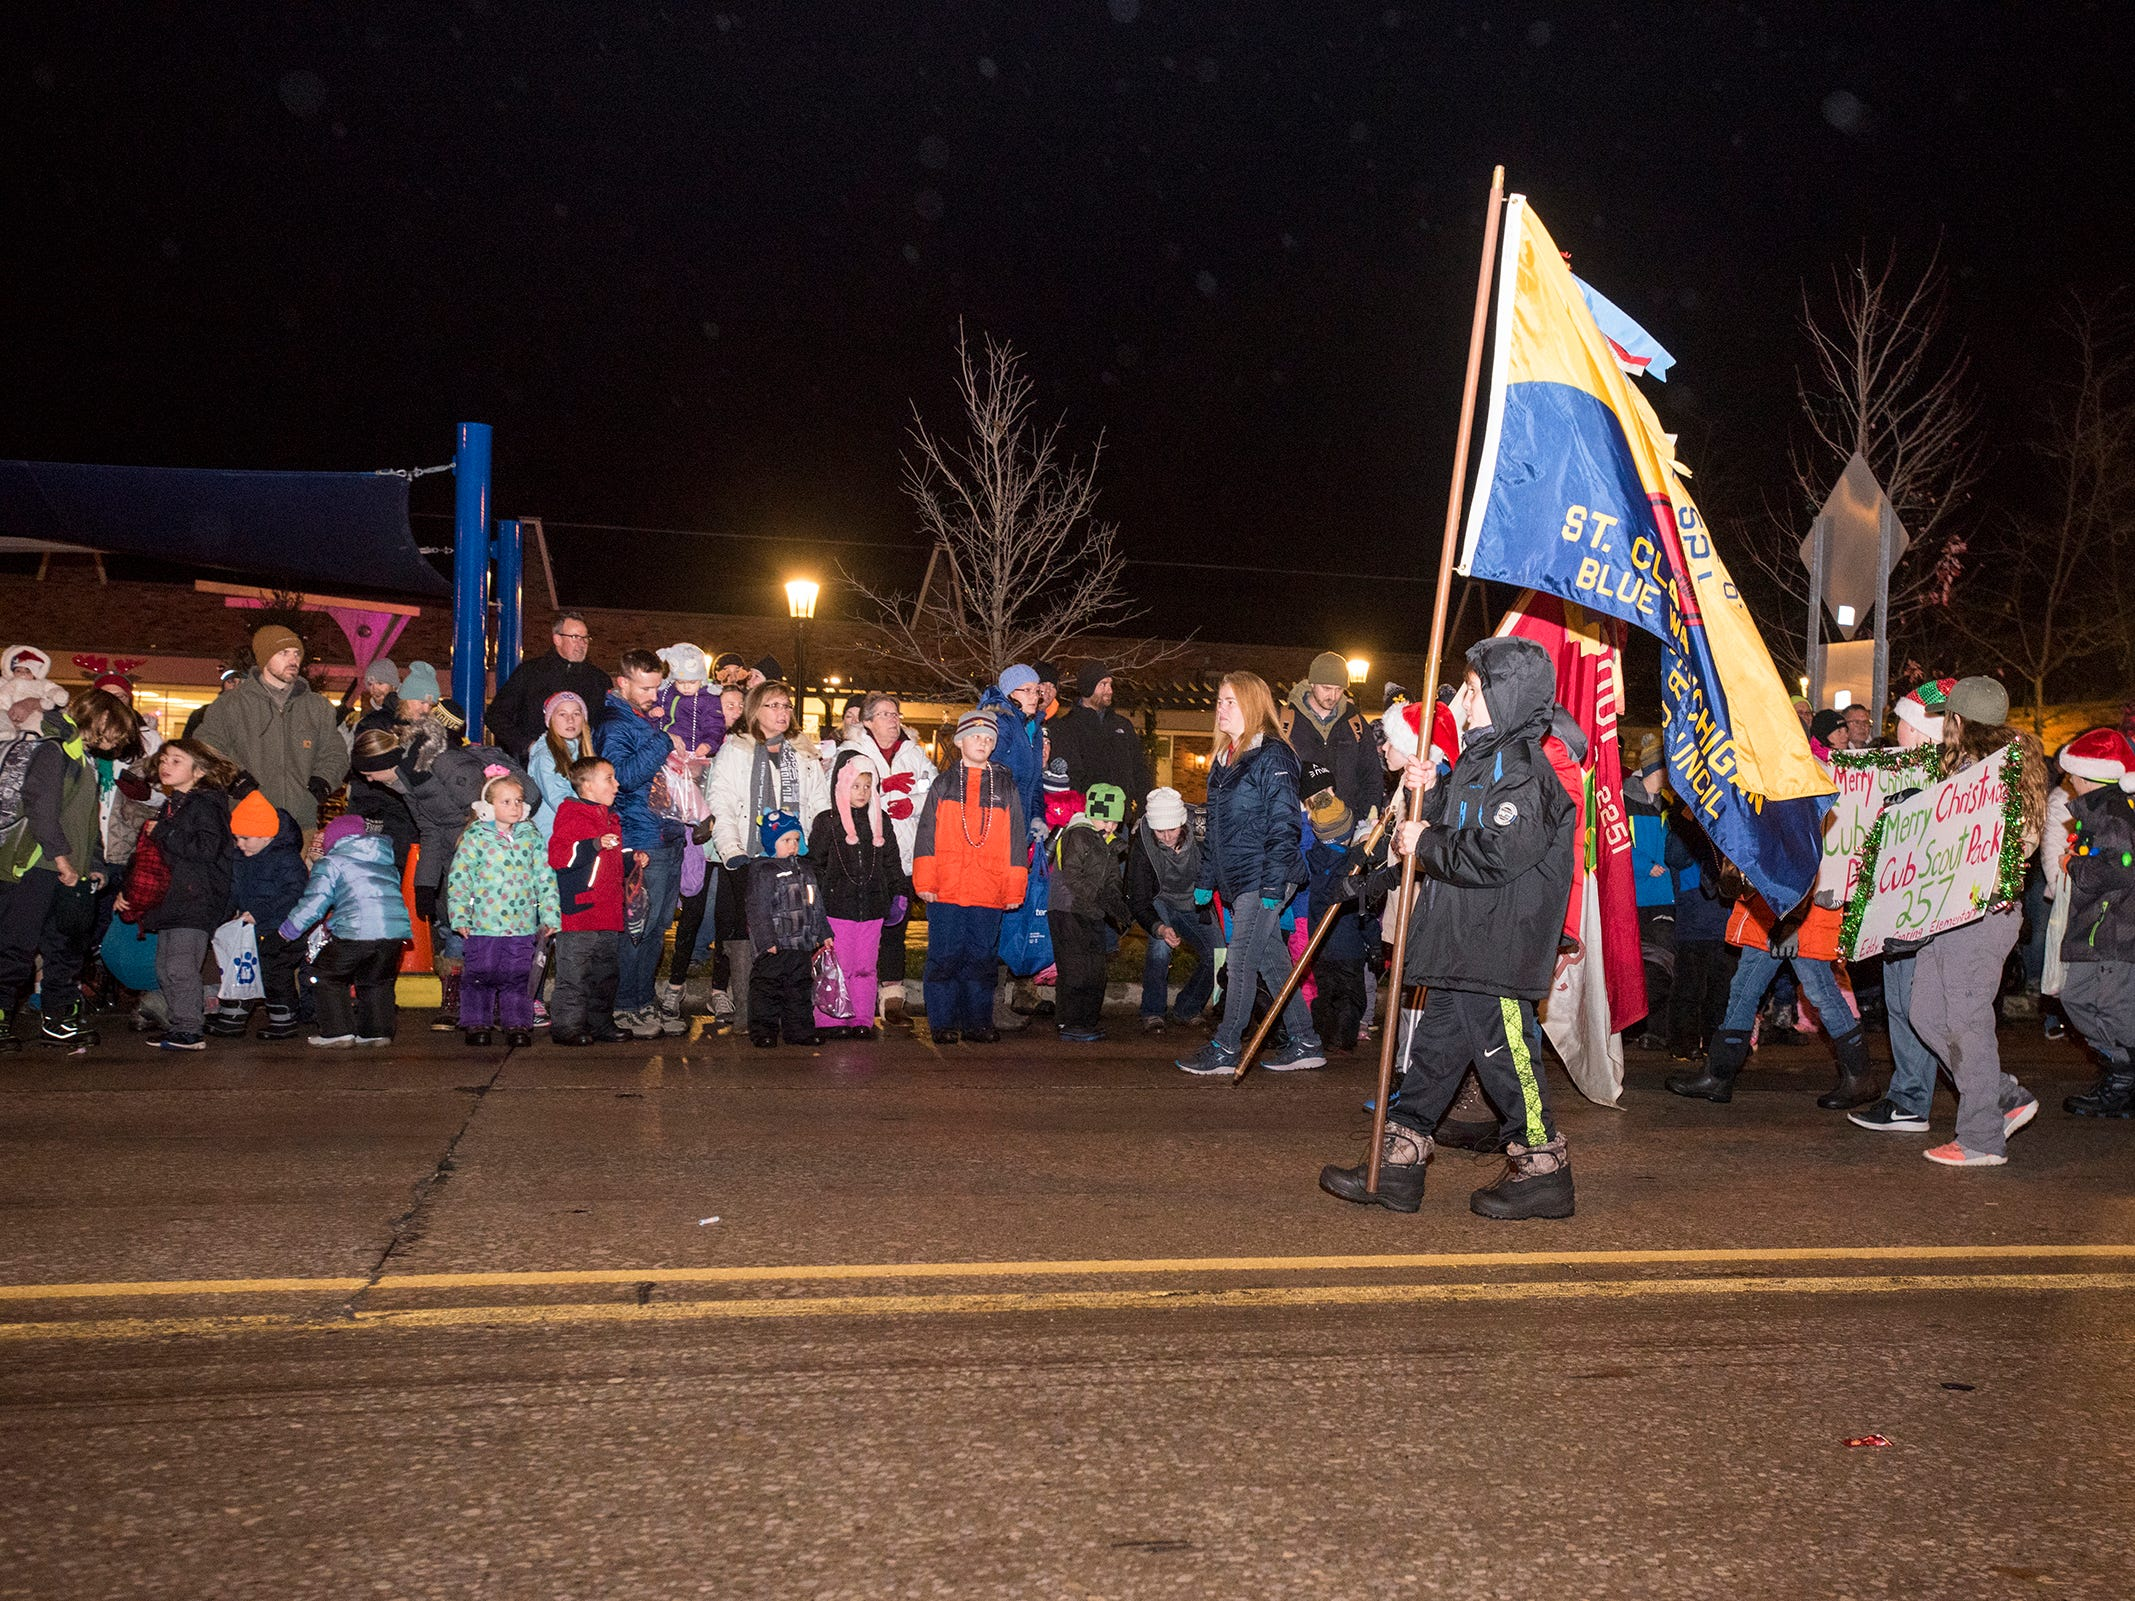 Boy and Cub Scouts march down Riverside Avenue Friday, Nov. 16, 2018 during the St. Clair Lighted Santa Parade.